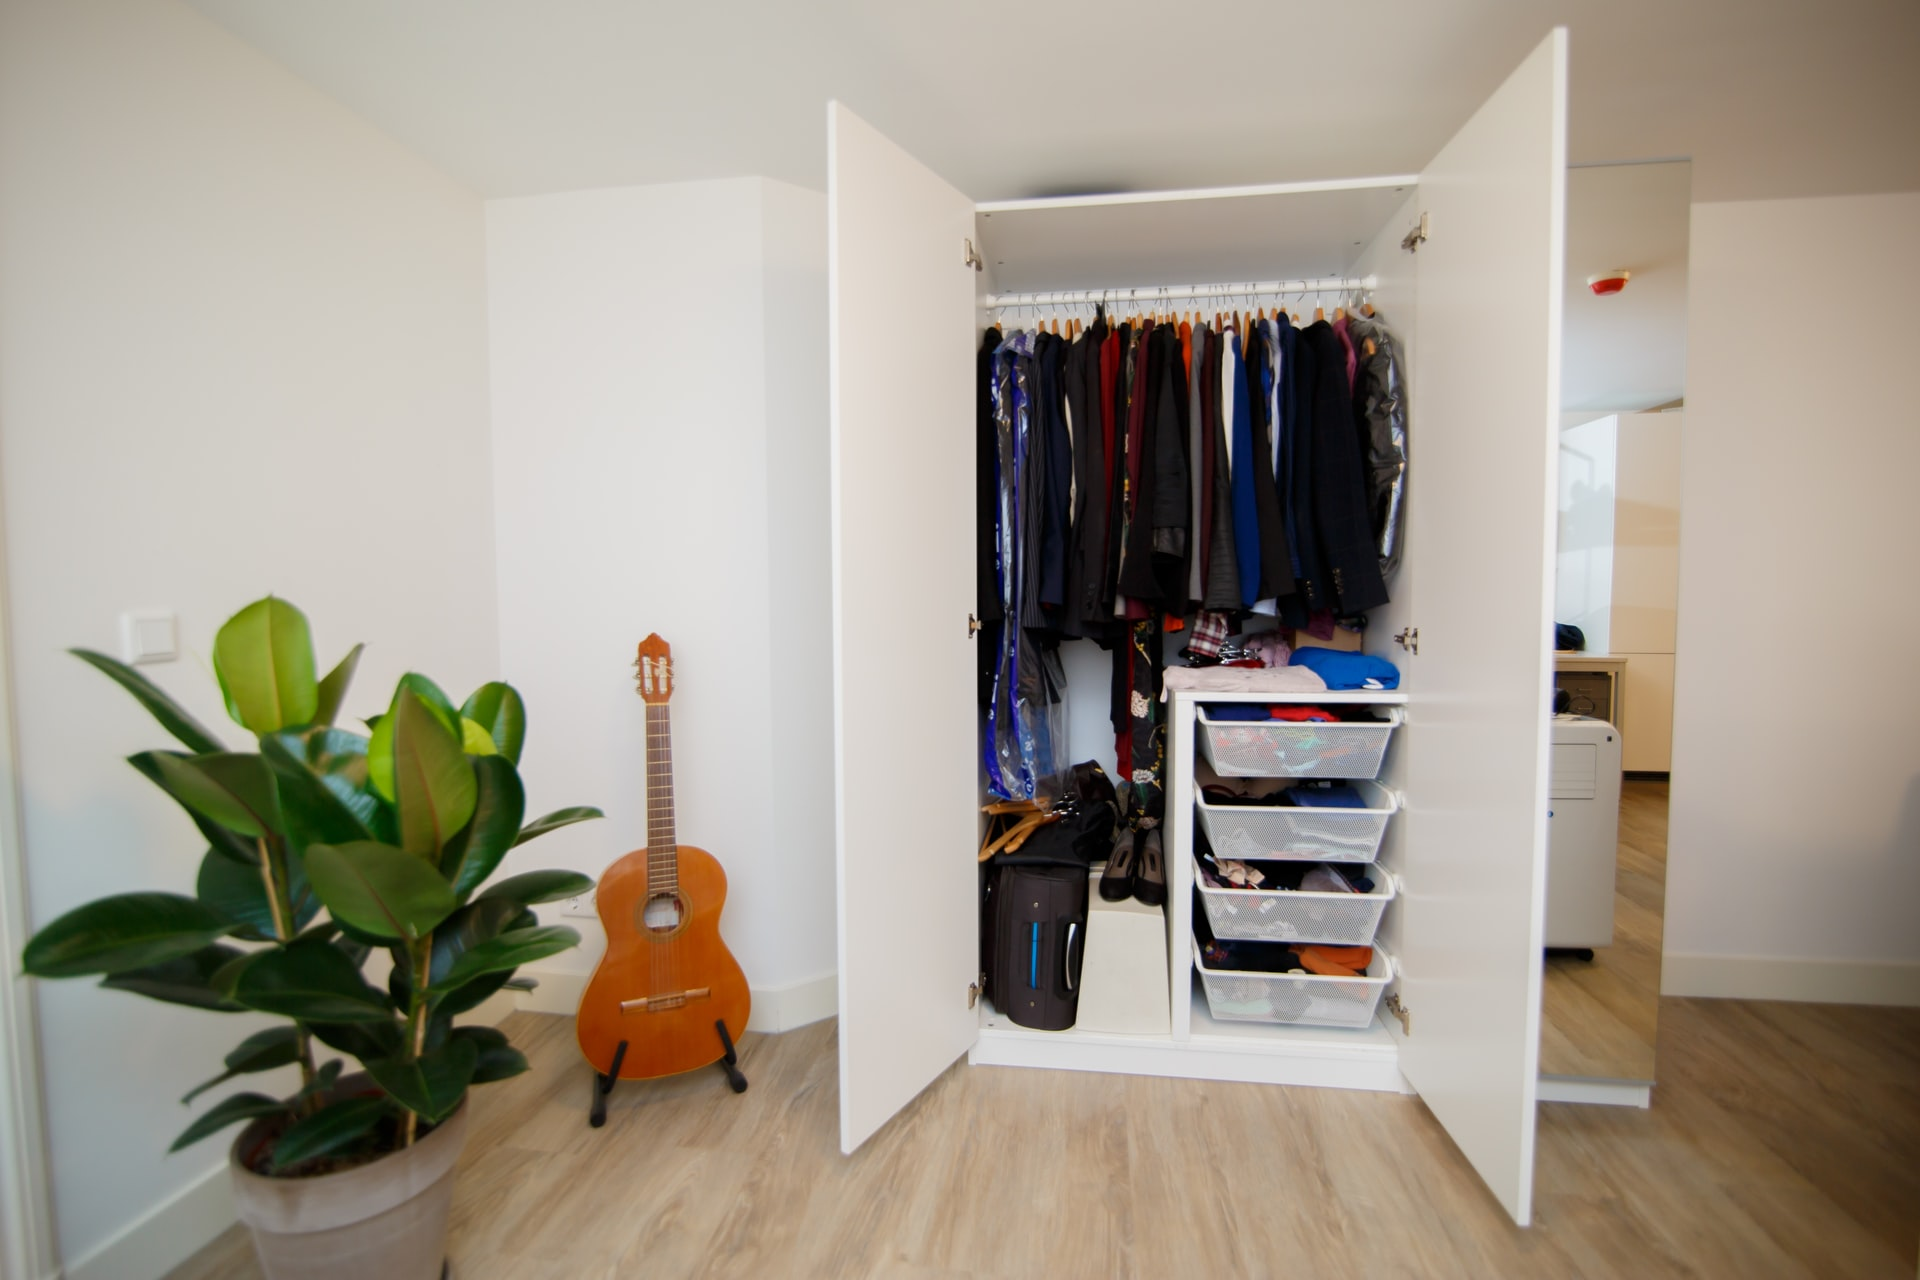 Are there treasures hiding in your closet?